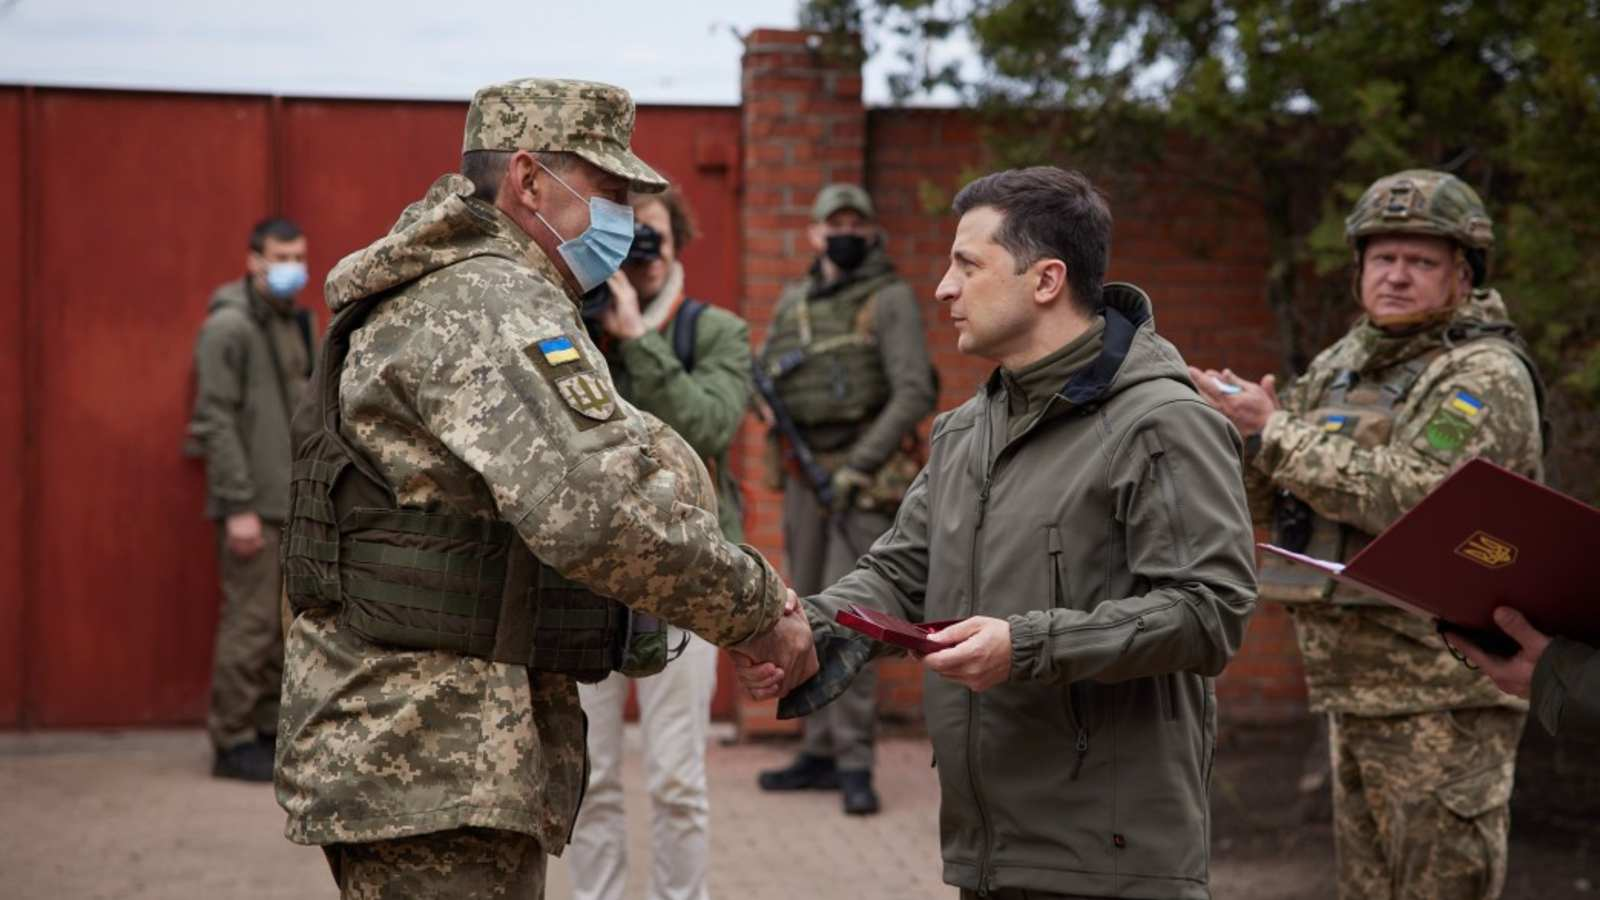 Photo: President Zelensky on a Working trip to Donbas April 8, 2021. Credit: President of Ukraine